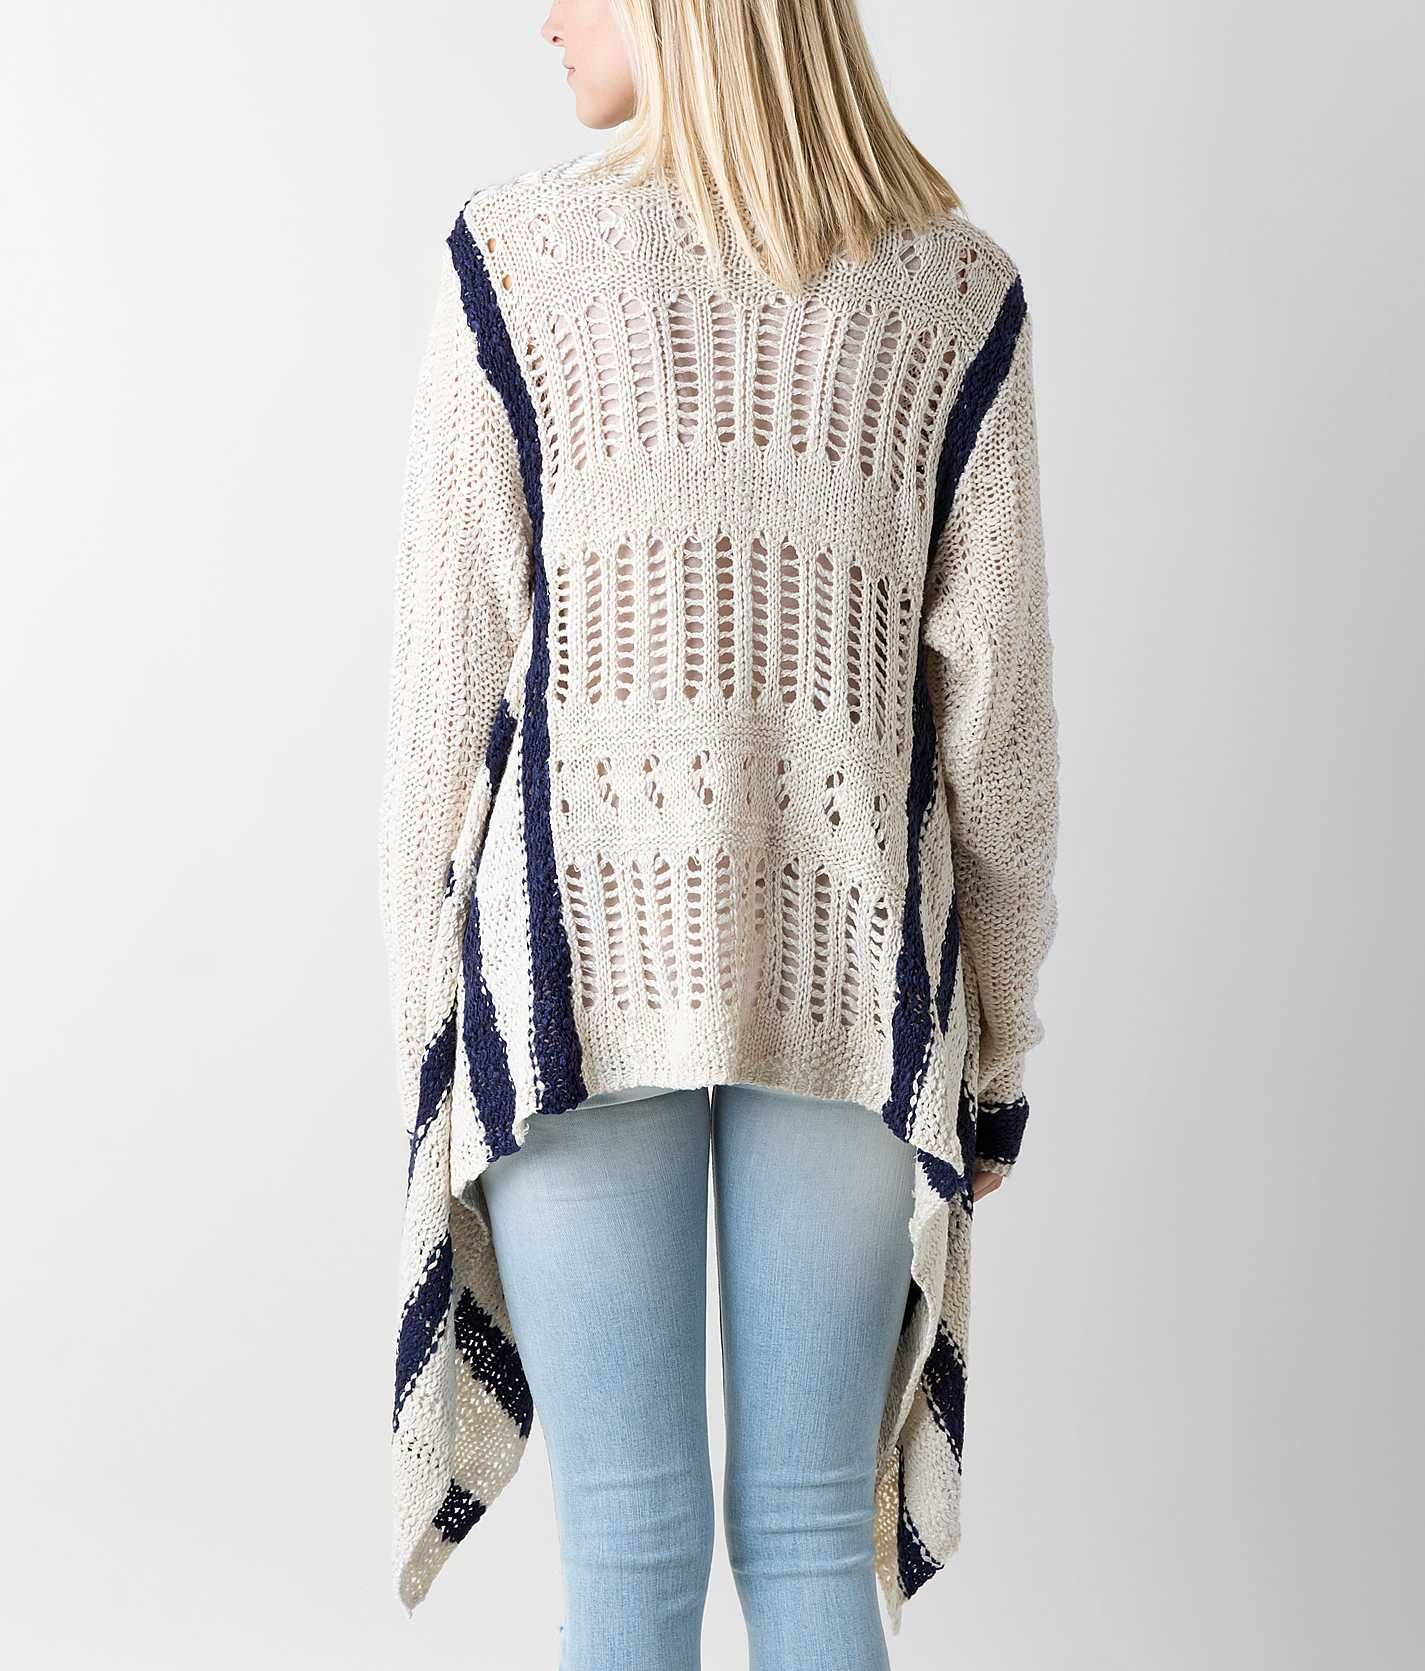 Daytrip Striped Cardigan Sweater - Women's Cardigans | Buckle ...